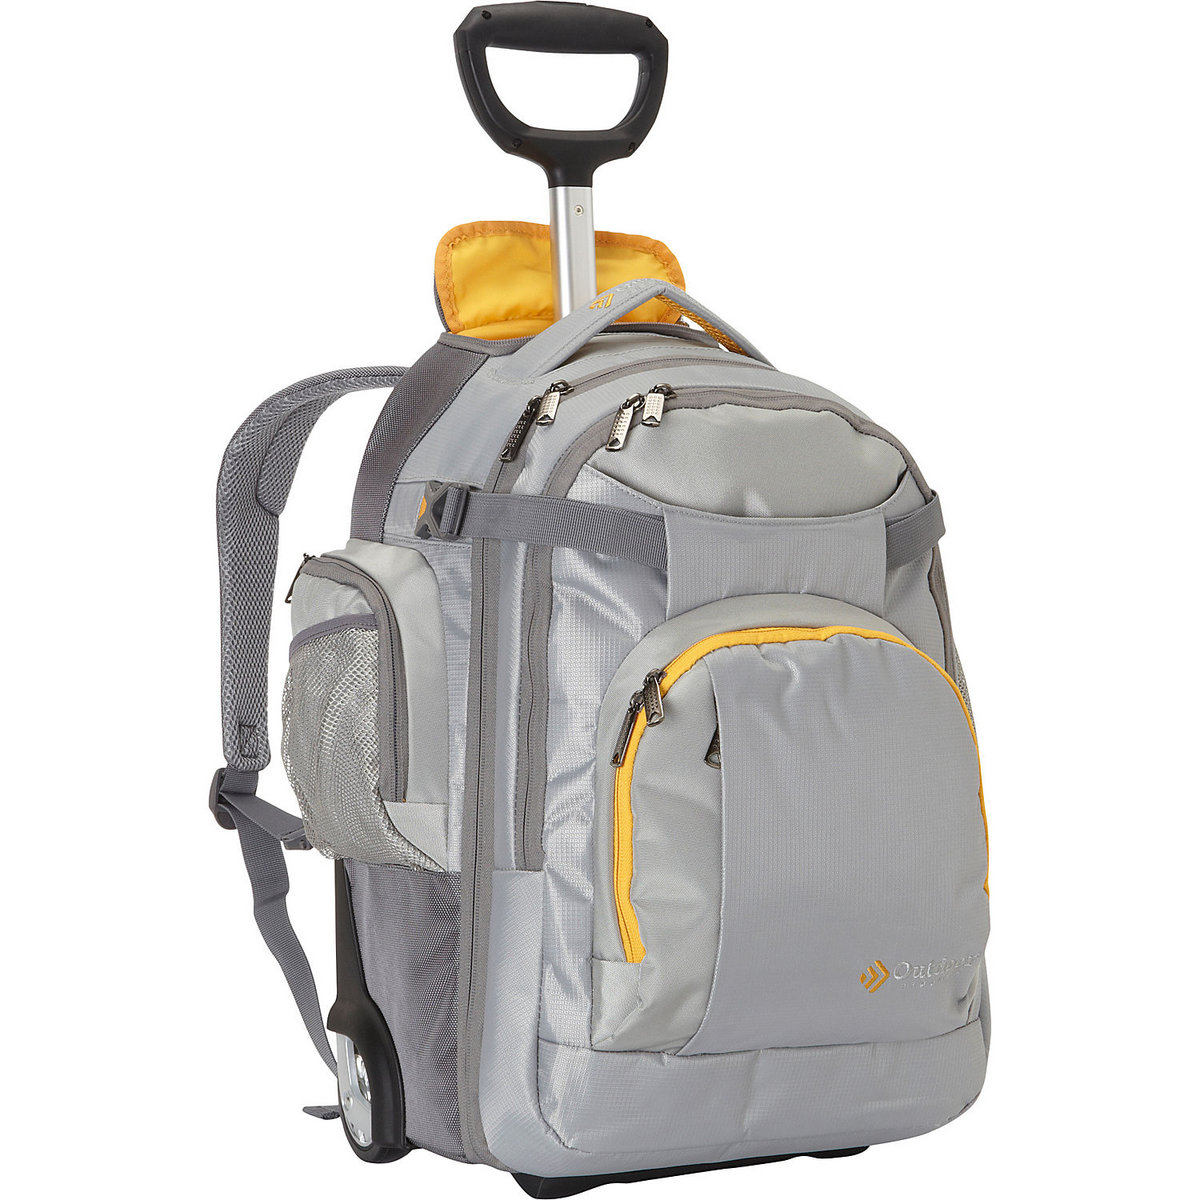 Buy Cheap Rolling School Backpacks Online | amit.goyal ...